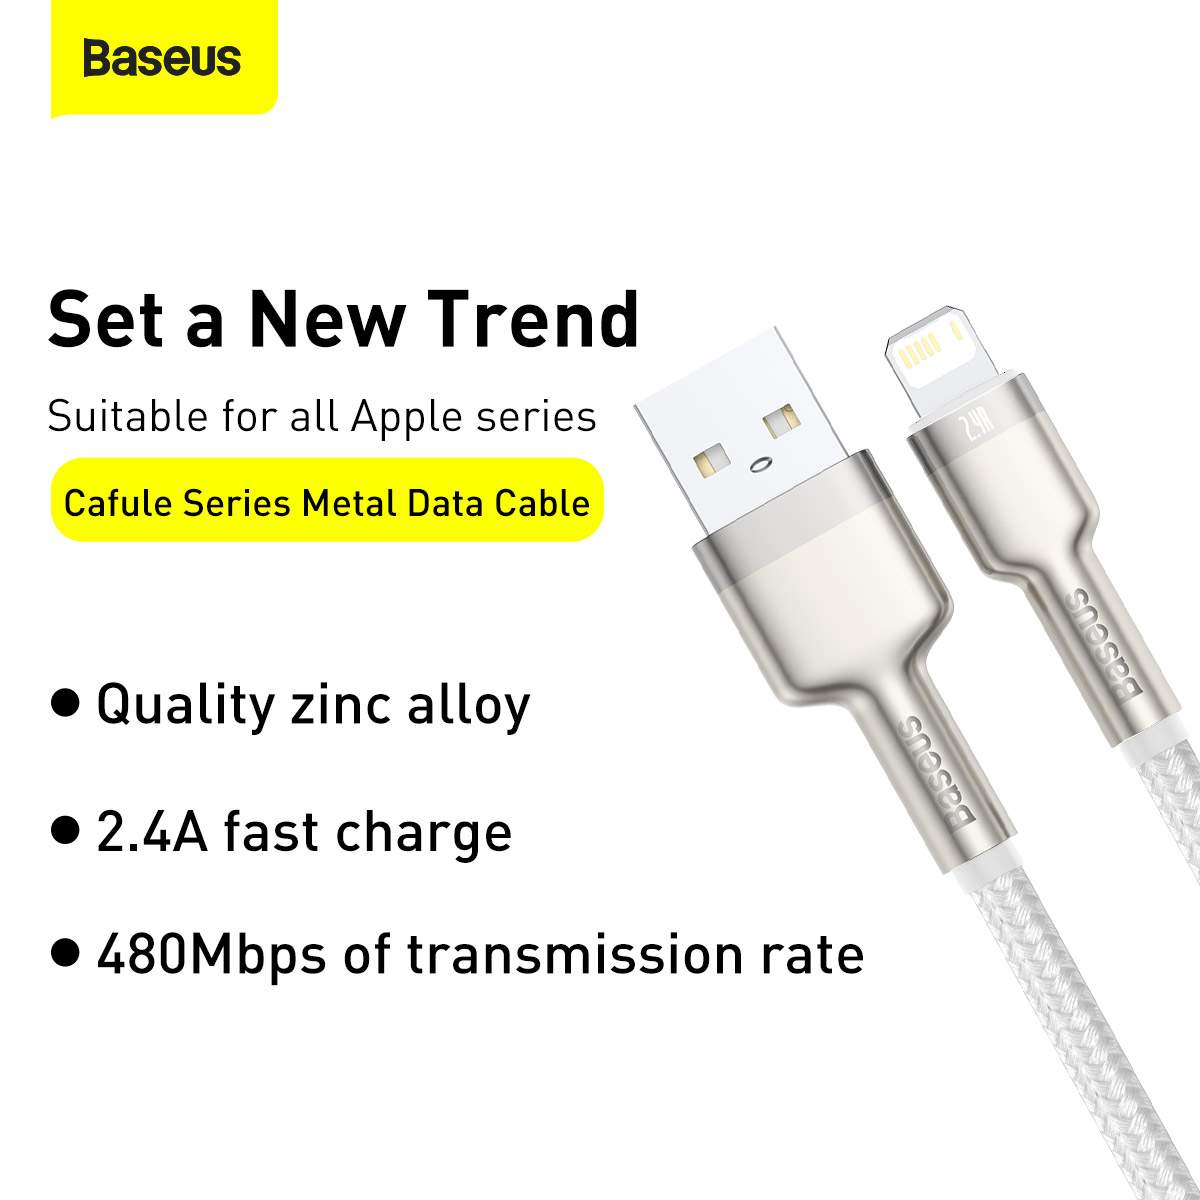 Baseus Lightning Cafule Series Metal data cable 2.4A 1m White (CALJK-A02)